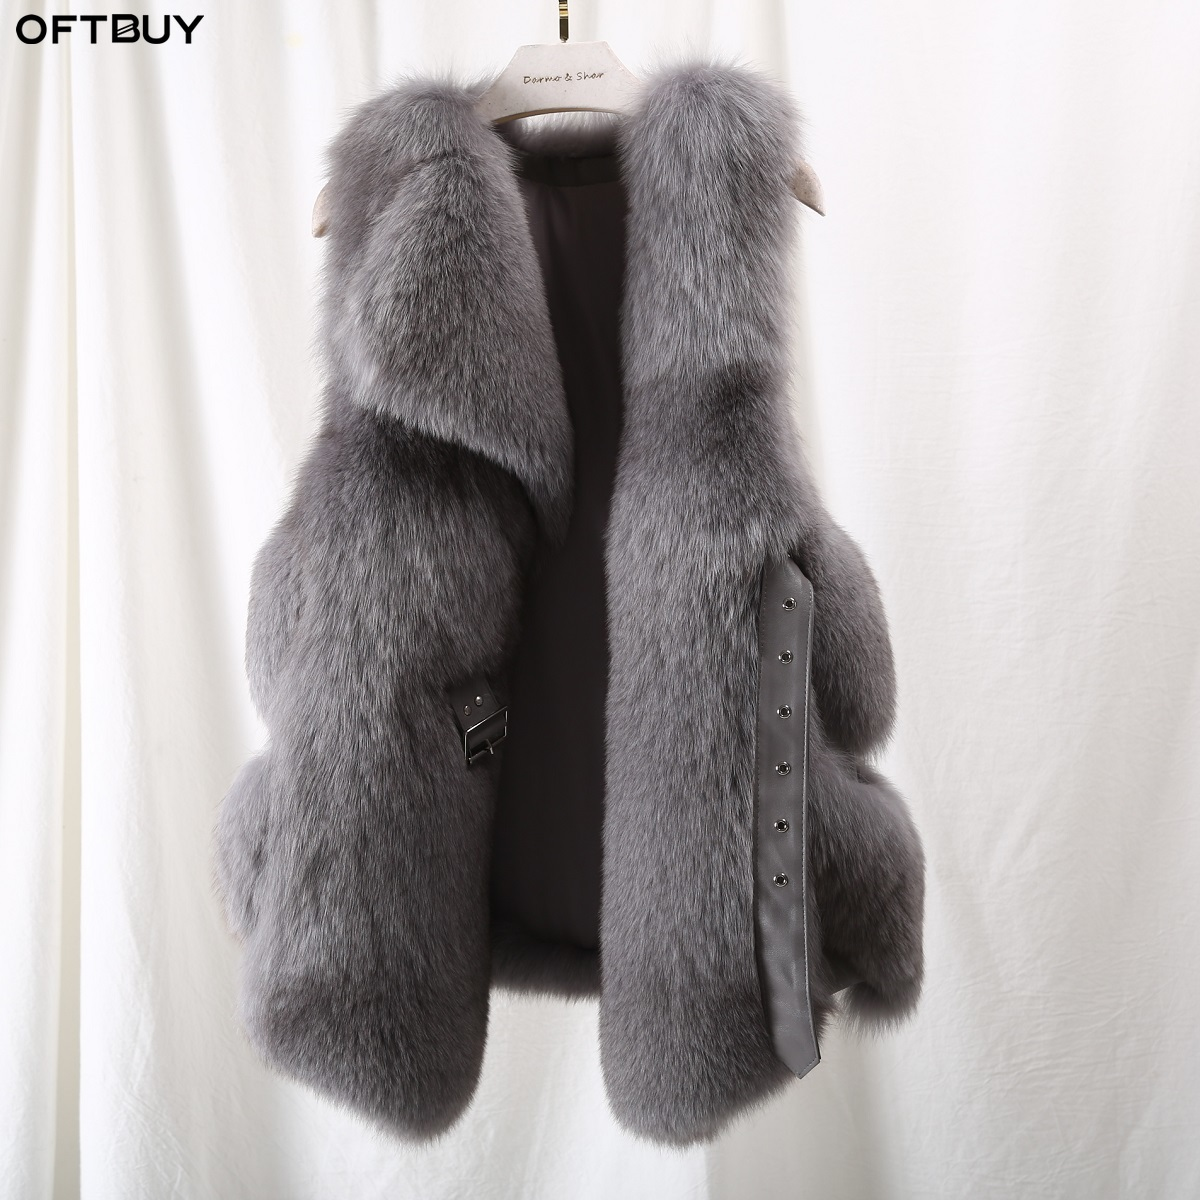 OFTBUY 2019 Real Fox Fur Sleeveless Vest Women Winter Jacket V-neck Natural Fur Coat Thick Warm Sheepskin Belt Streetwear New